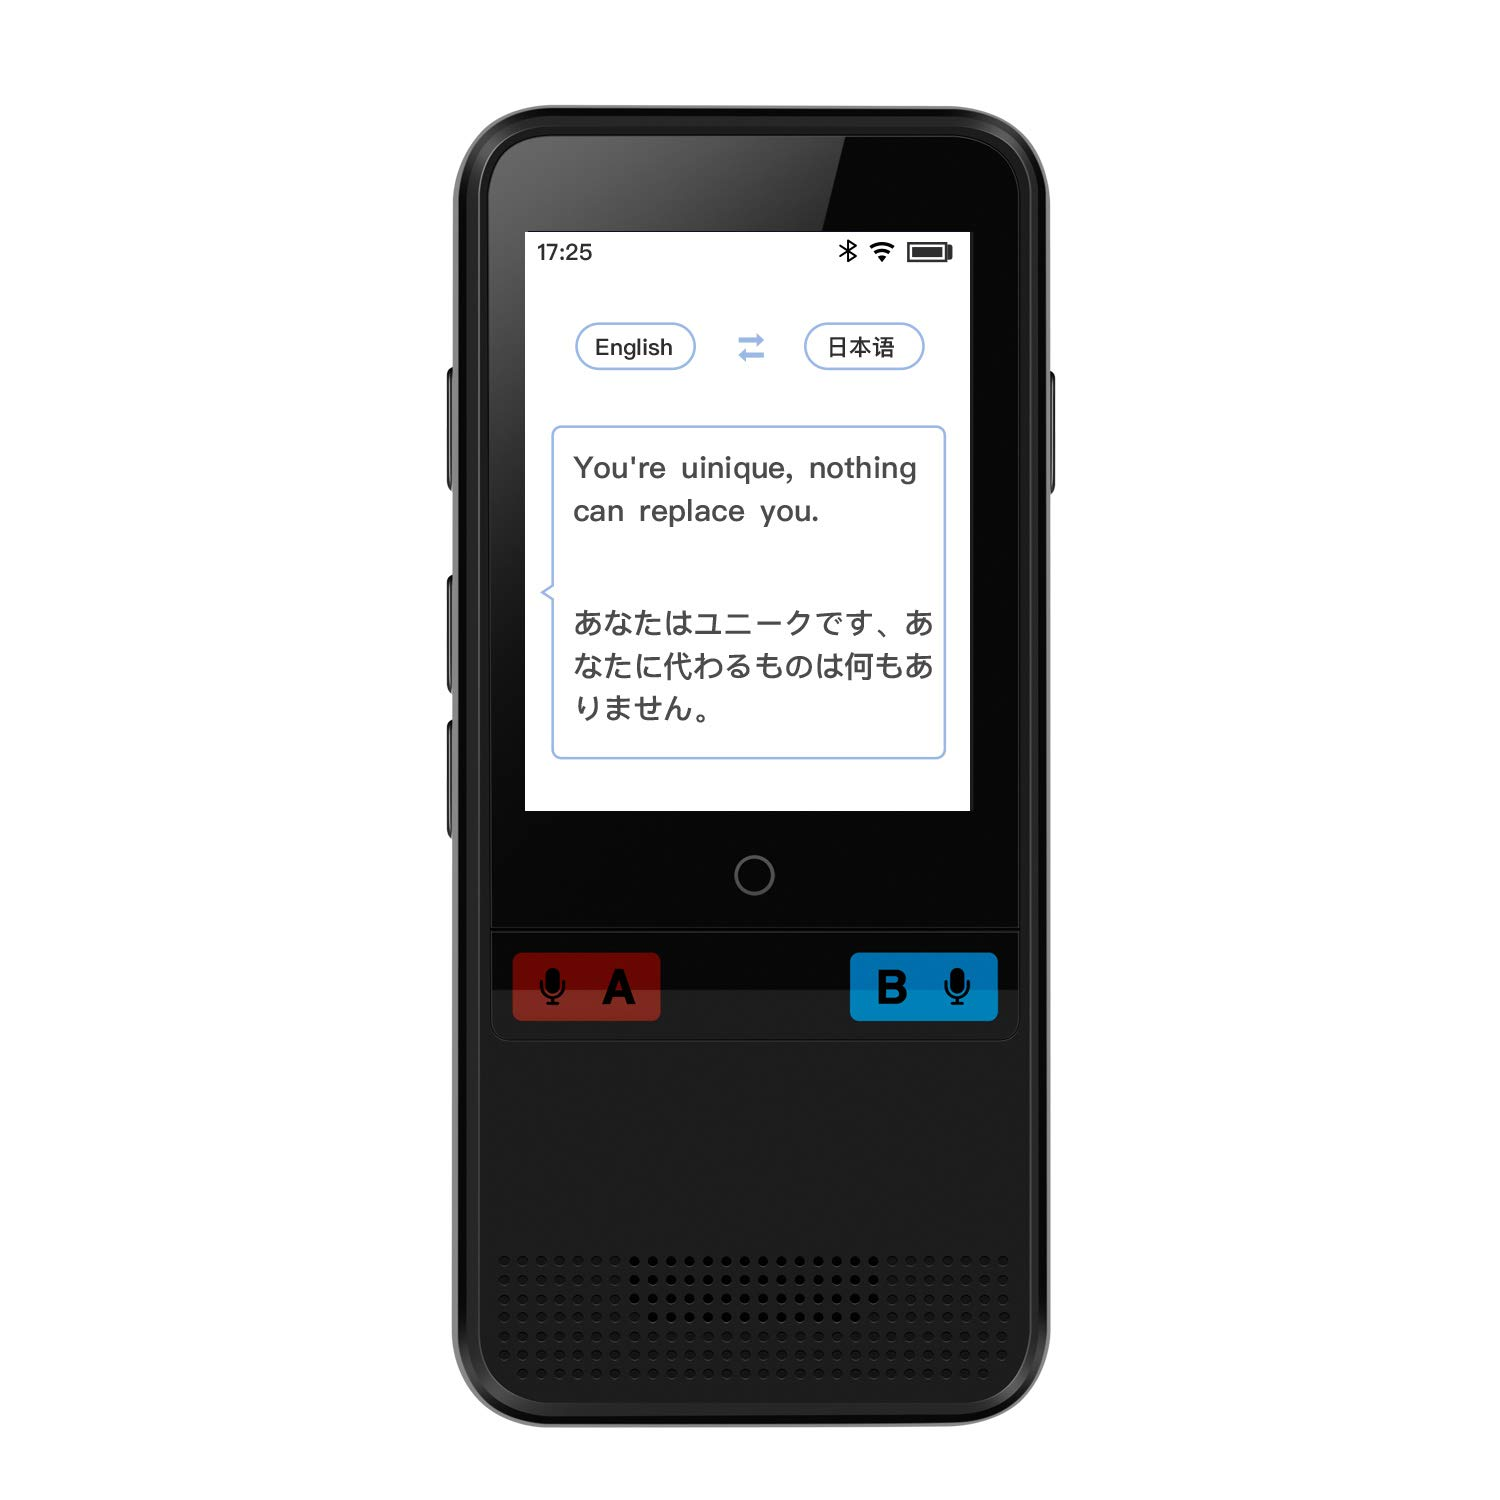 ODDO Language Translator Device,Integrated AI Speech Recognition and Translation Engine,Supports Instant Translation Between 45 Languages(Two-Way),Support WiFi 、Hotspots(Black)